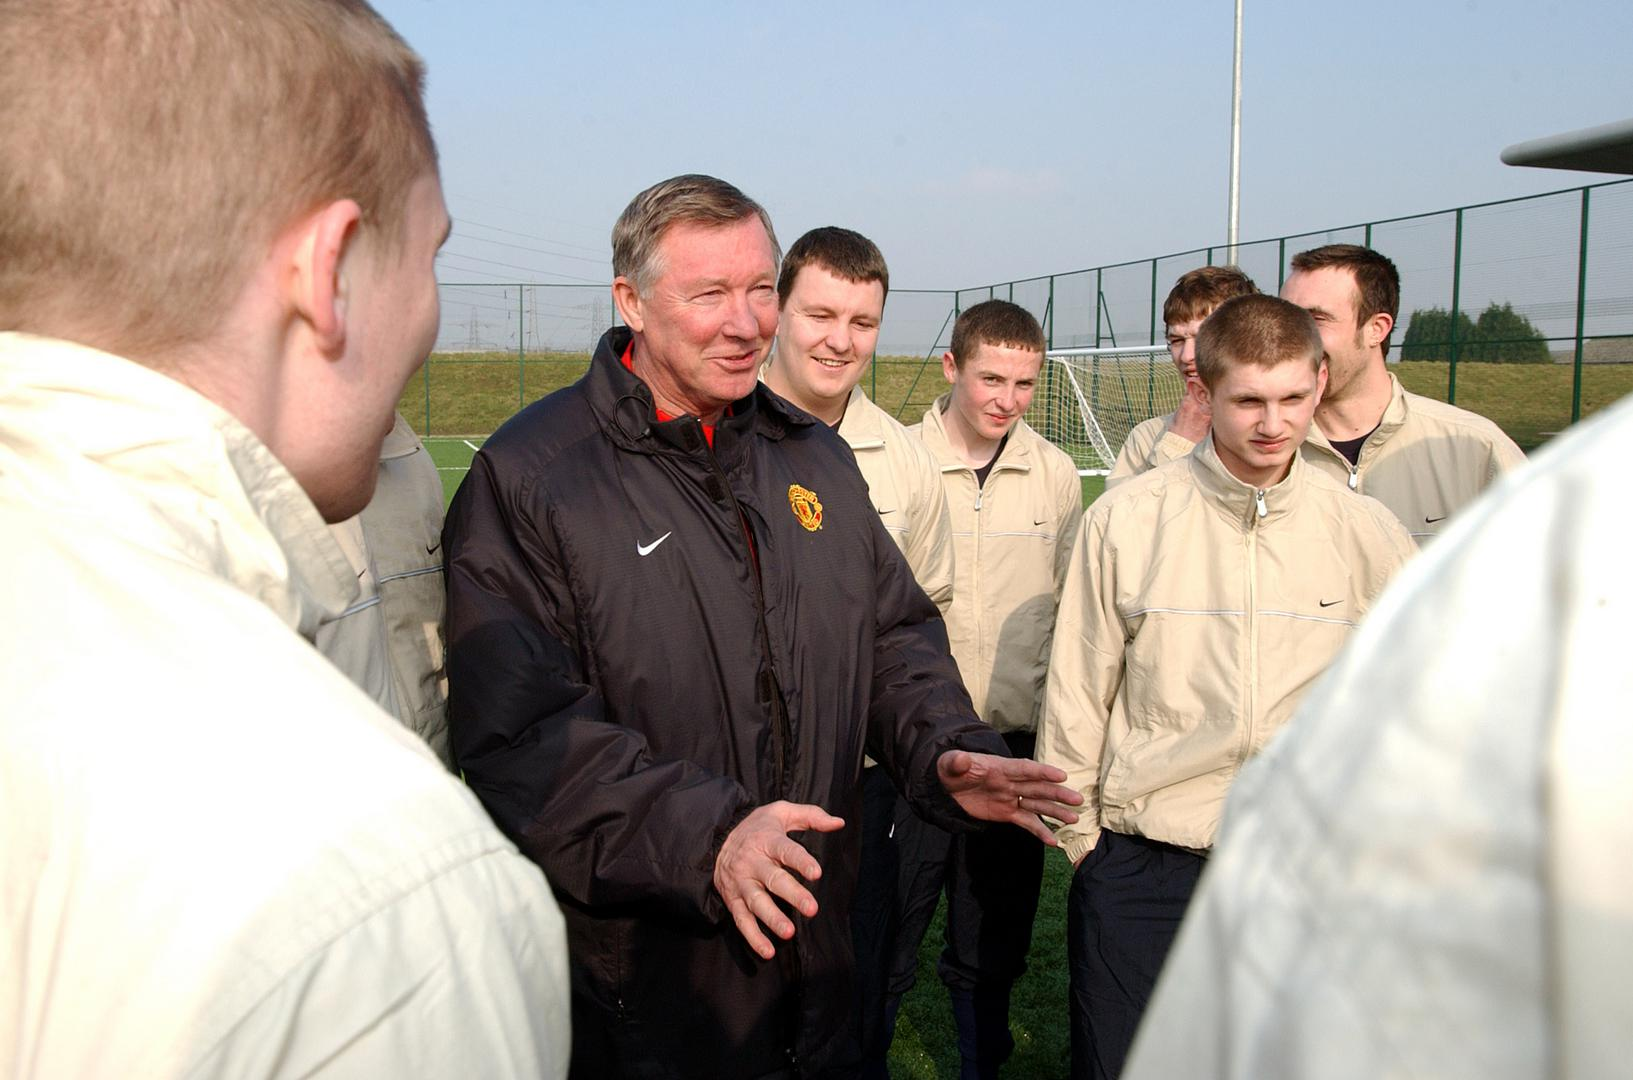 Sir Alex Ferguson with the Scotland Homeless World Cup squad in 2003.